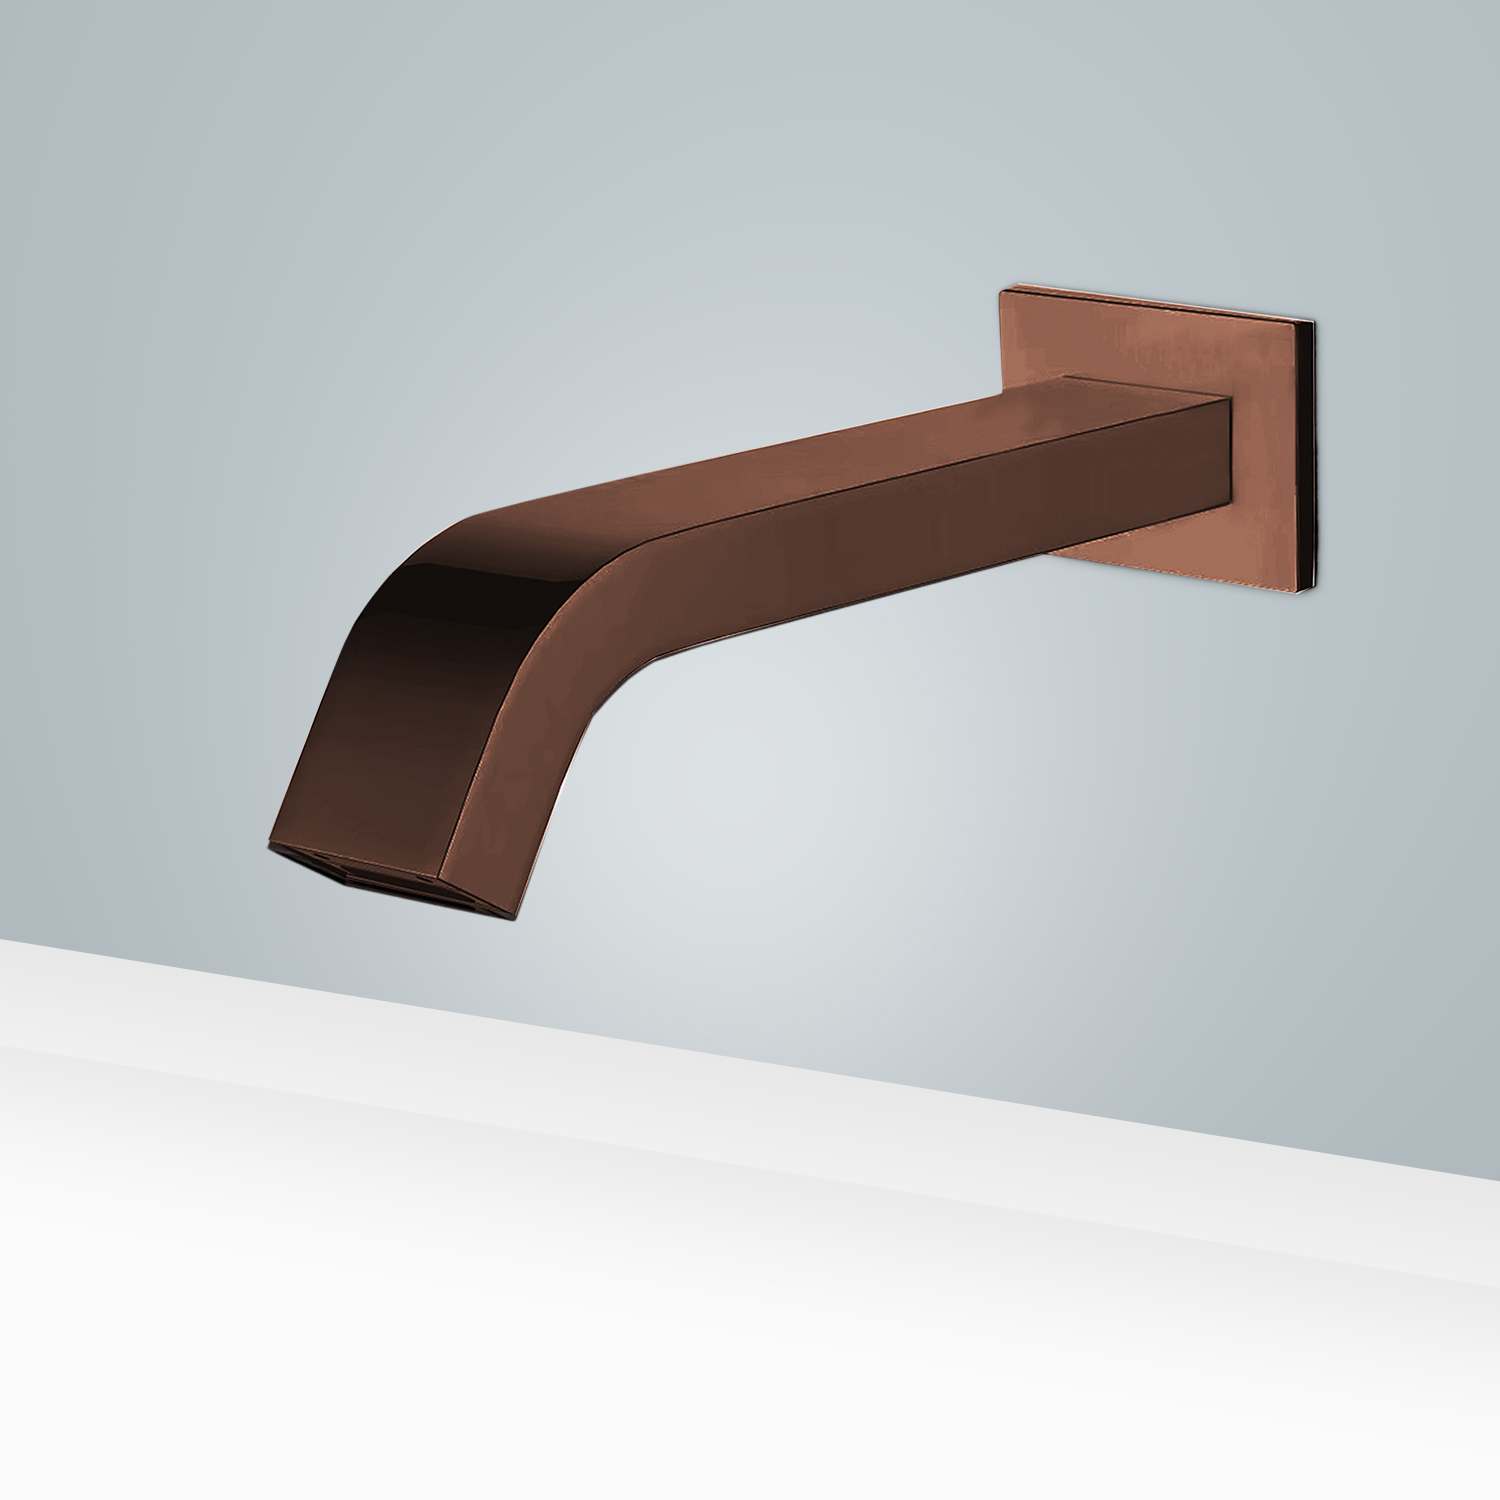 Fontana Light Oil Rubbed Bronze Wall Mount Commercial Automatic Sensor Faucet with Insight Infrared Technology